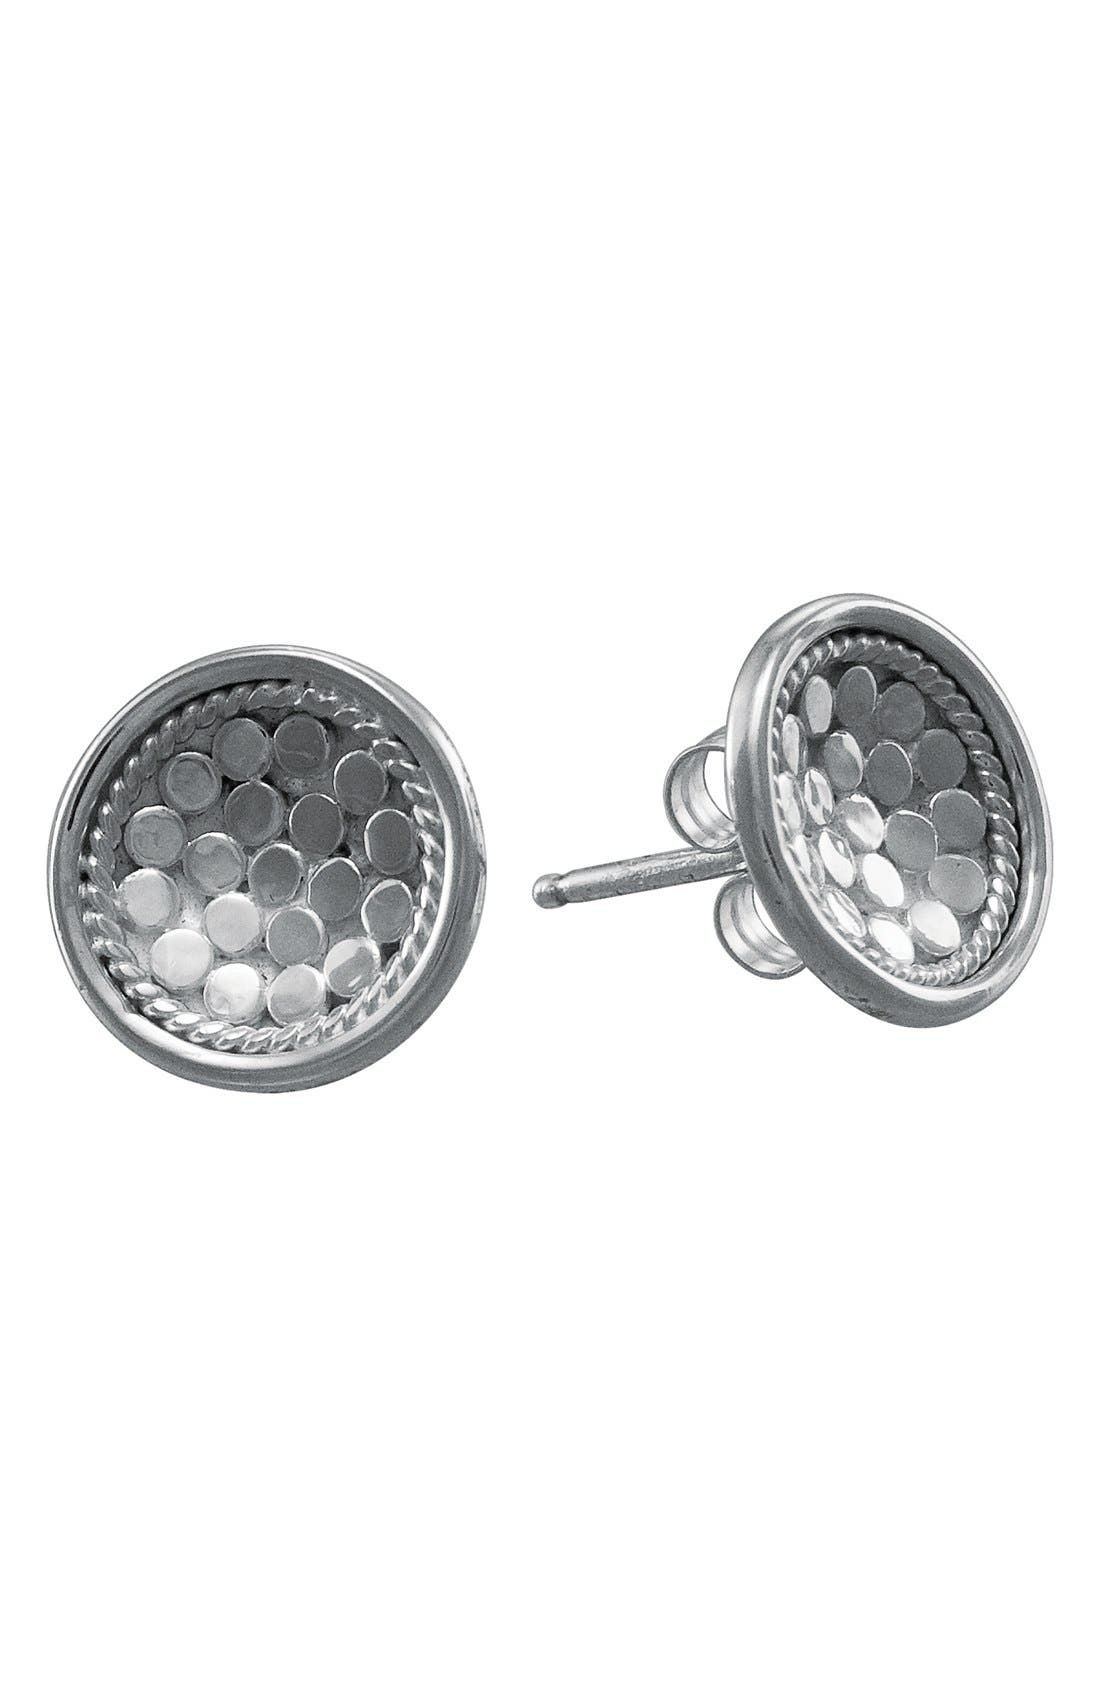 Main Image - Anna Beck 'Gili' Small Dish Stud Earrings